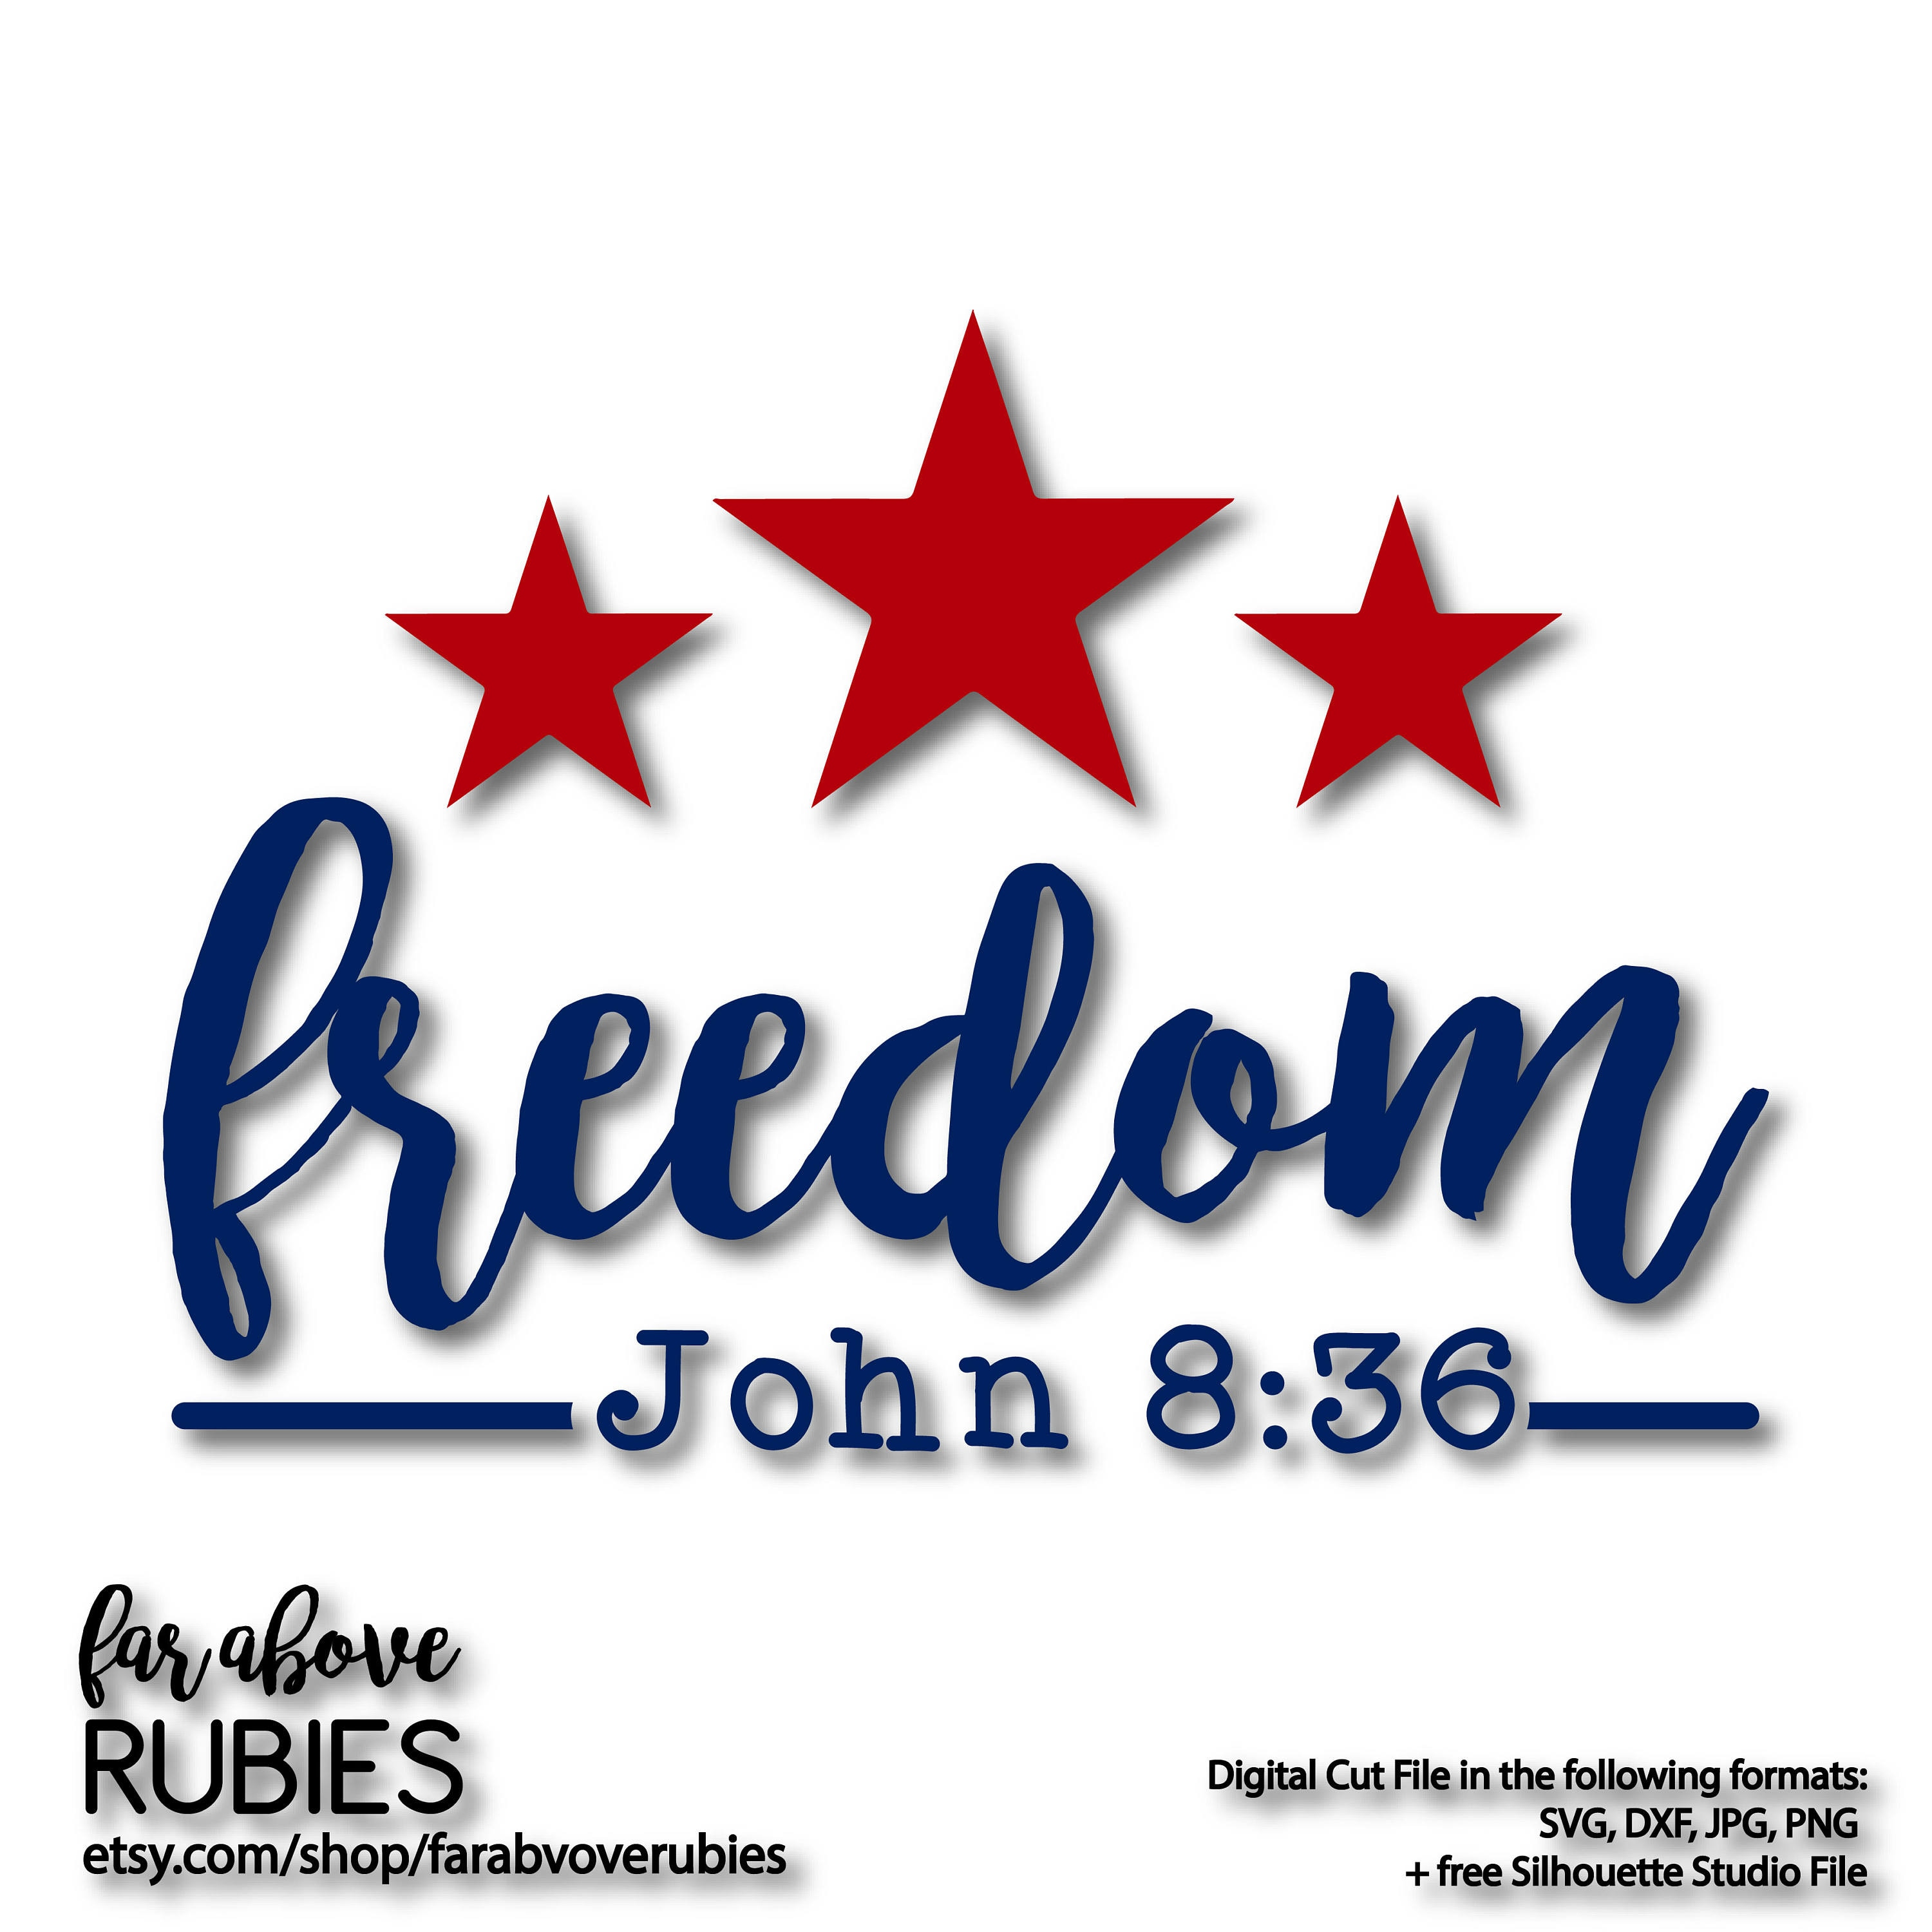 May The Fourth Be With You Svg: Freedom Stars John 8:36 Bible Verse SVG EPS Dxf Png Jpg